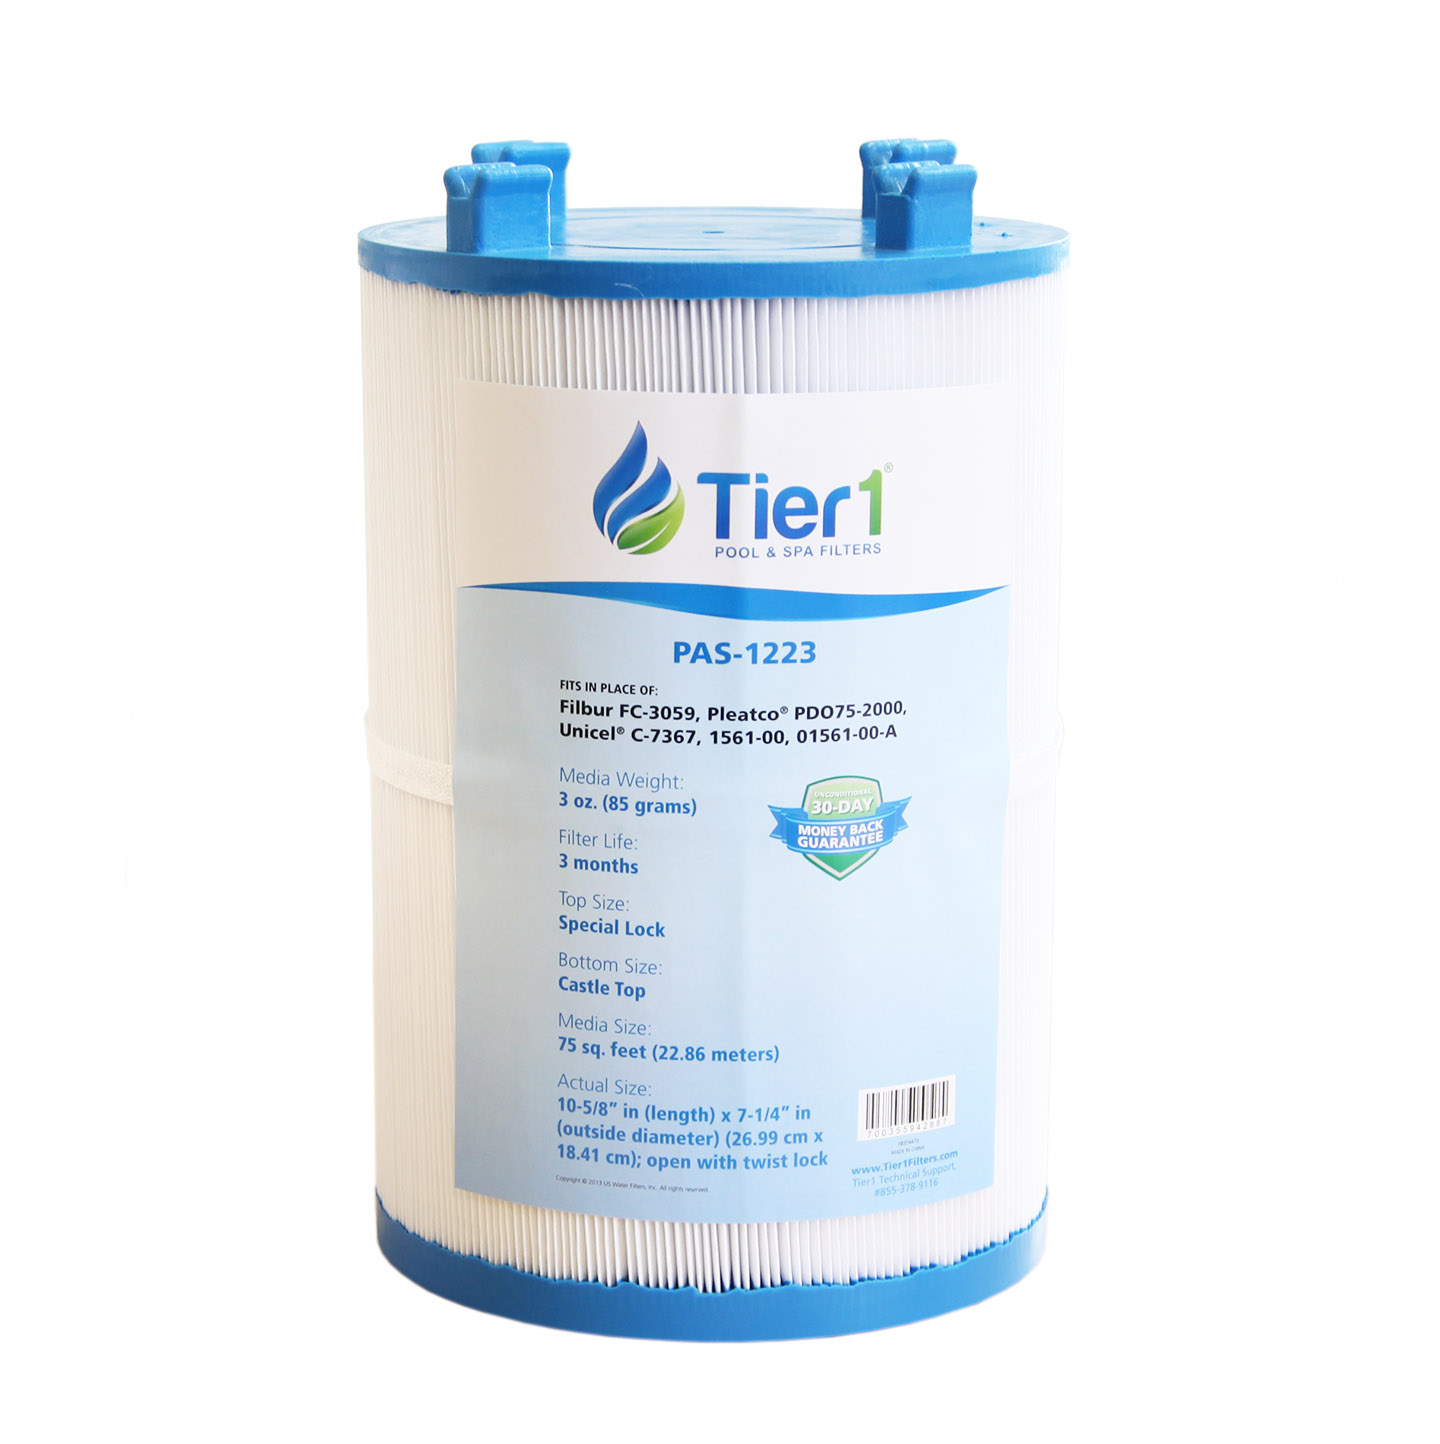 Tier1 Dimension One 1561-00, Pleatco PDO75-2000, Filbur FC-3059, Unicel C-7367 Comparable Replacement Spa Filter Cartridge for Dimension one Spas